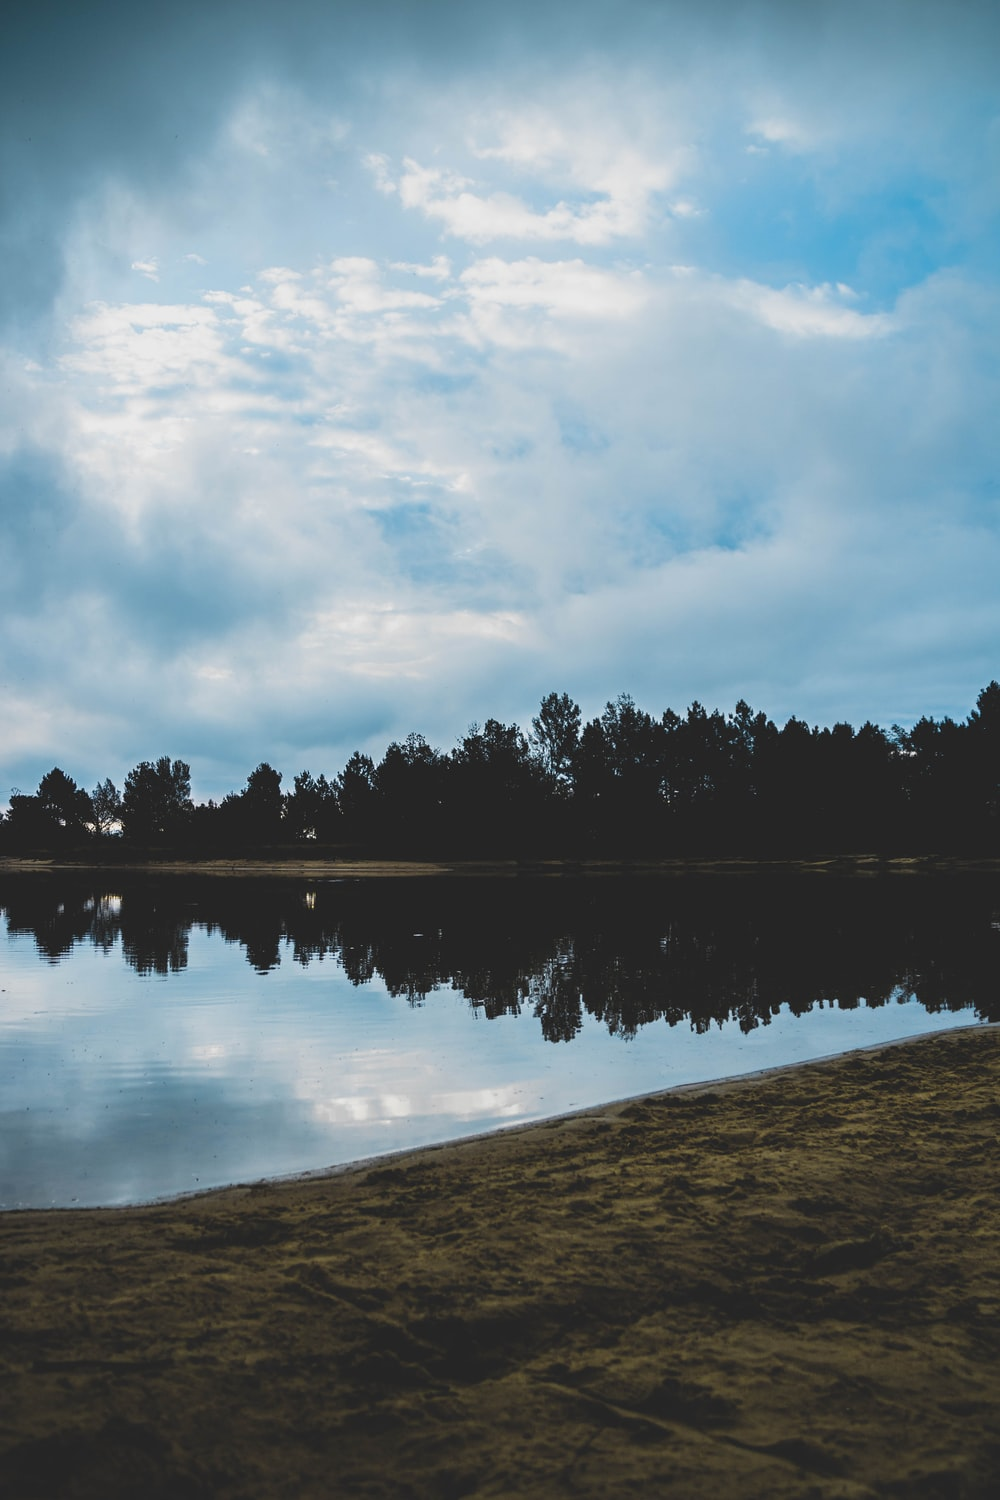 body of water near trees under cloudy sky during daytime